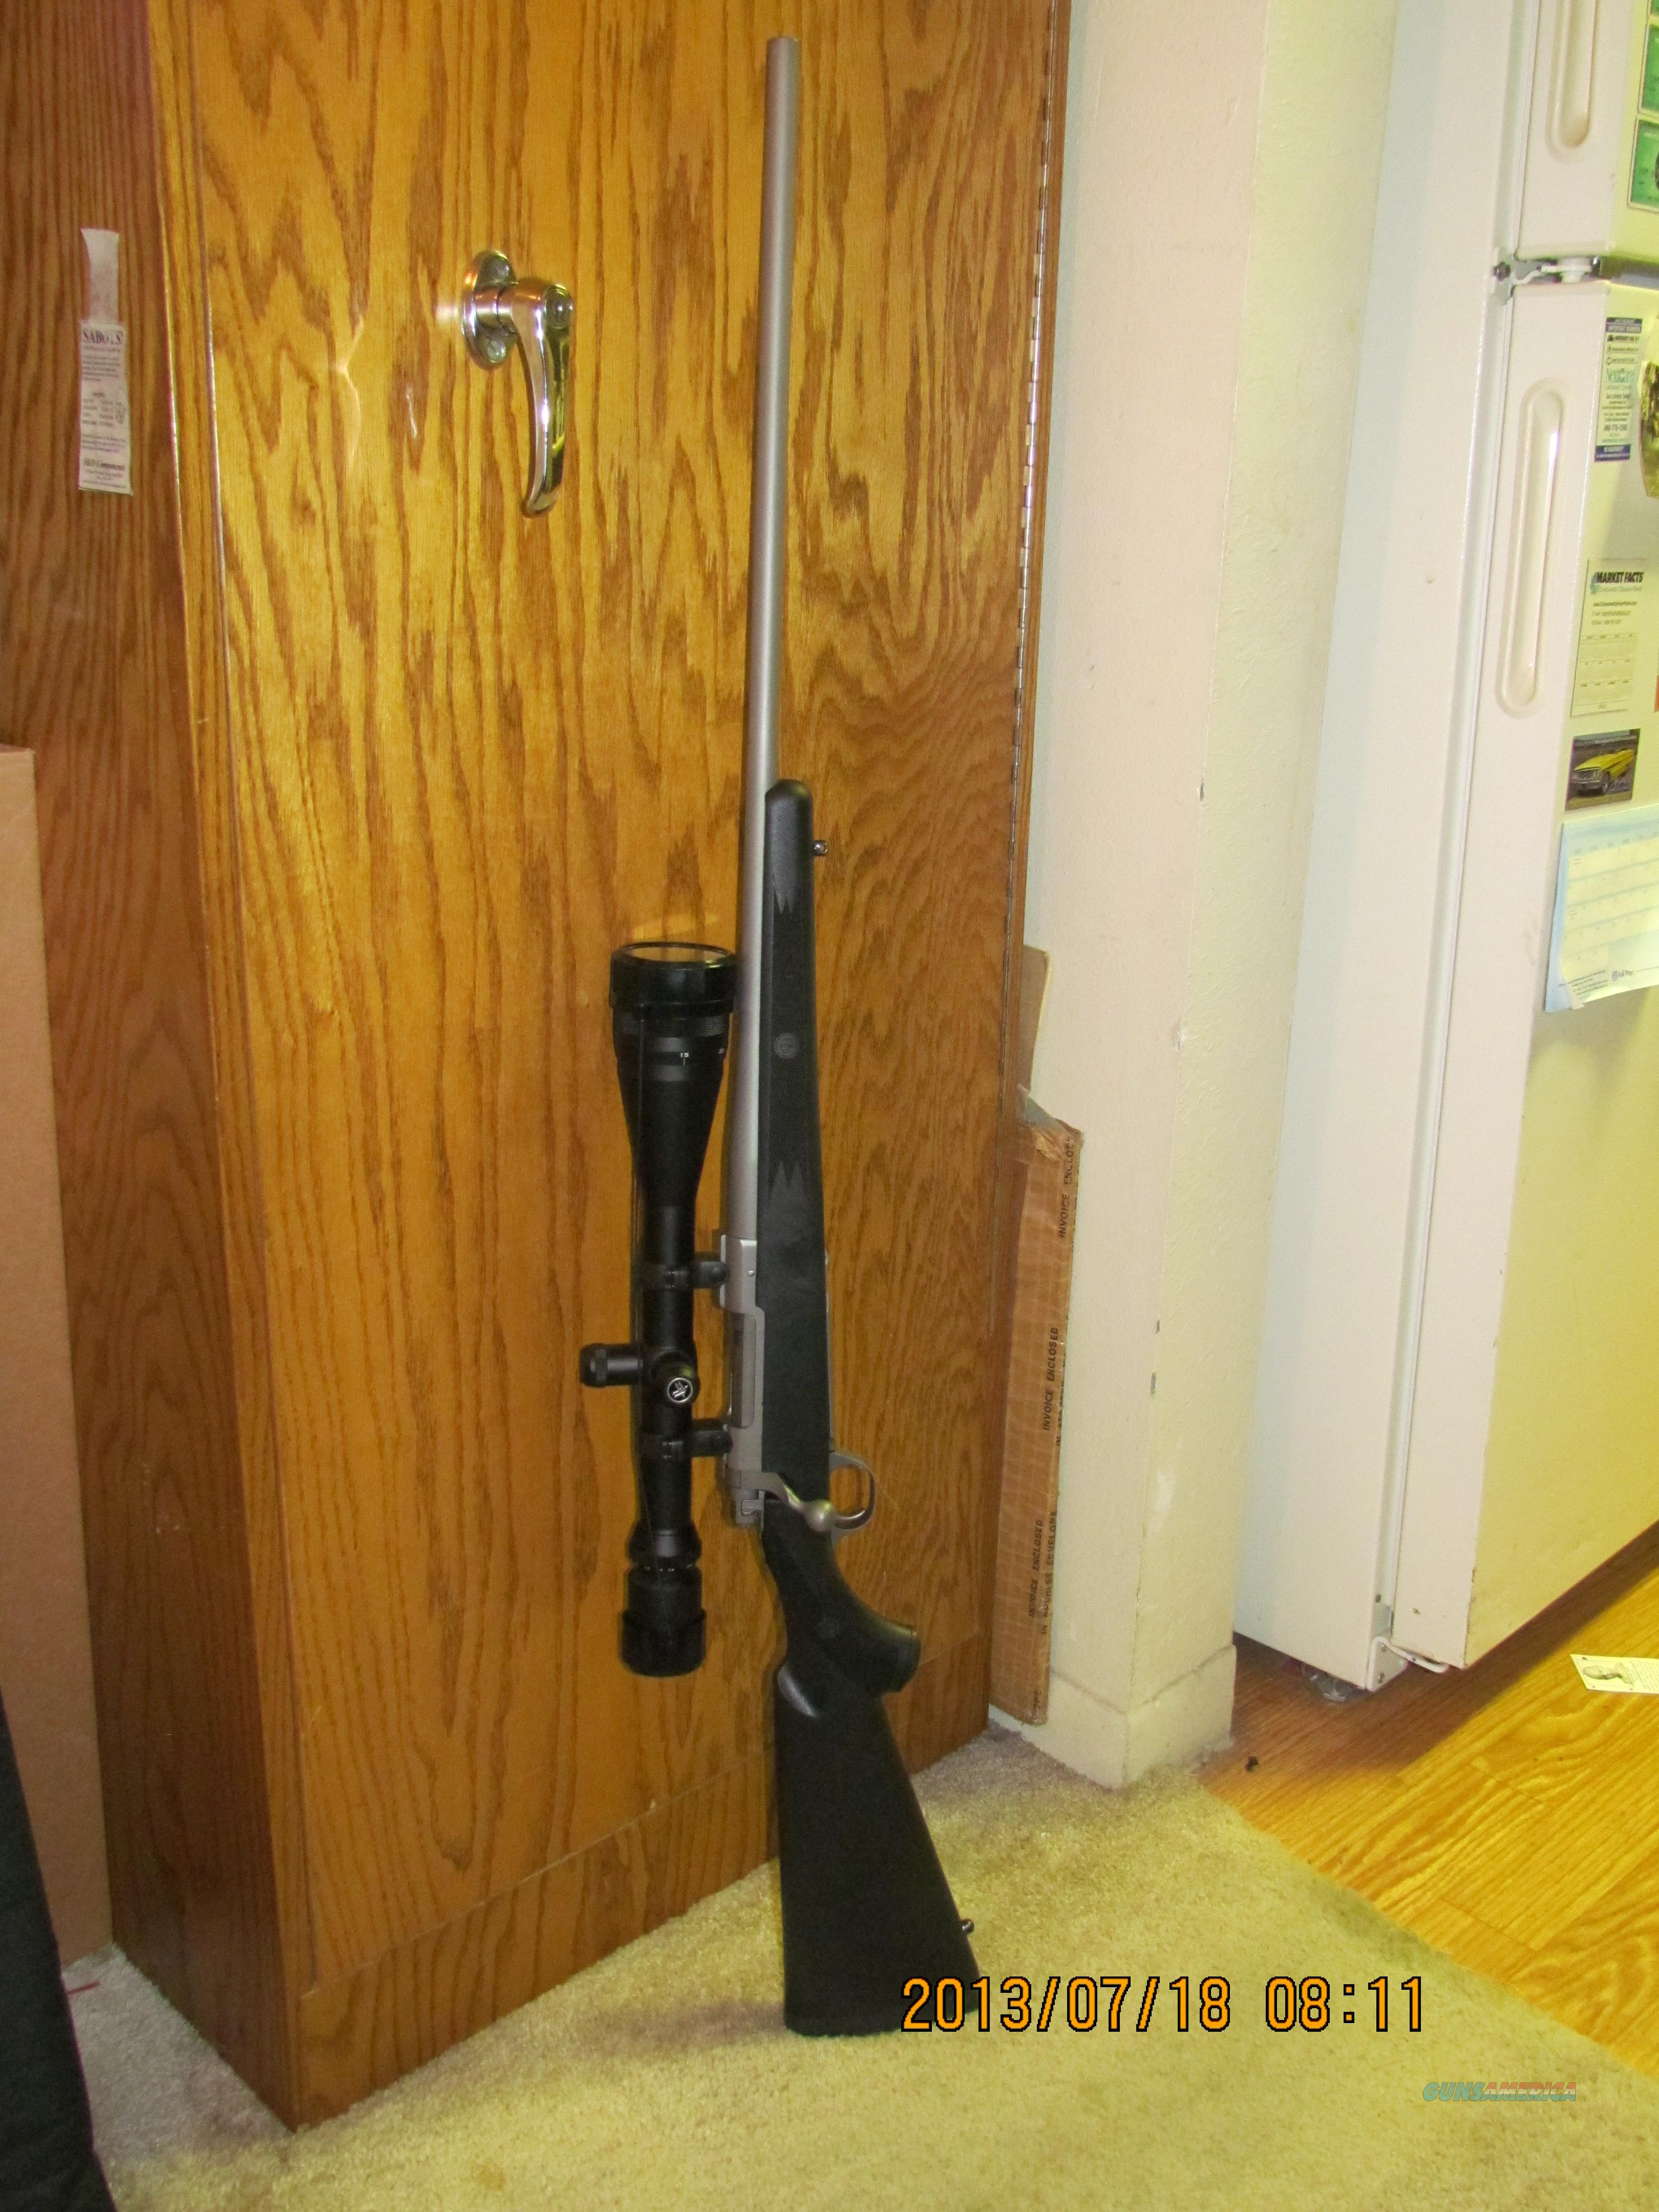 Ruger 77 Hawkeye 6.5 Creedmoor, scope NOT included!  Guns > Rifles > Ruger Rifles > Model 77